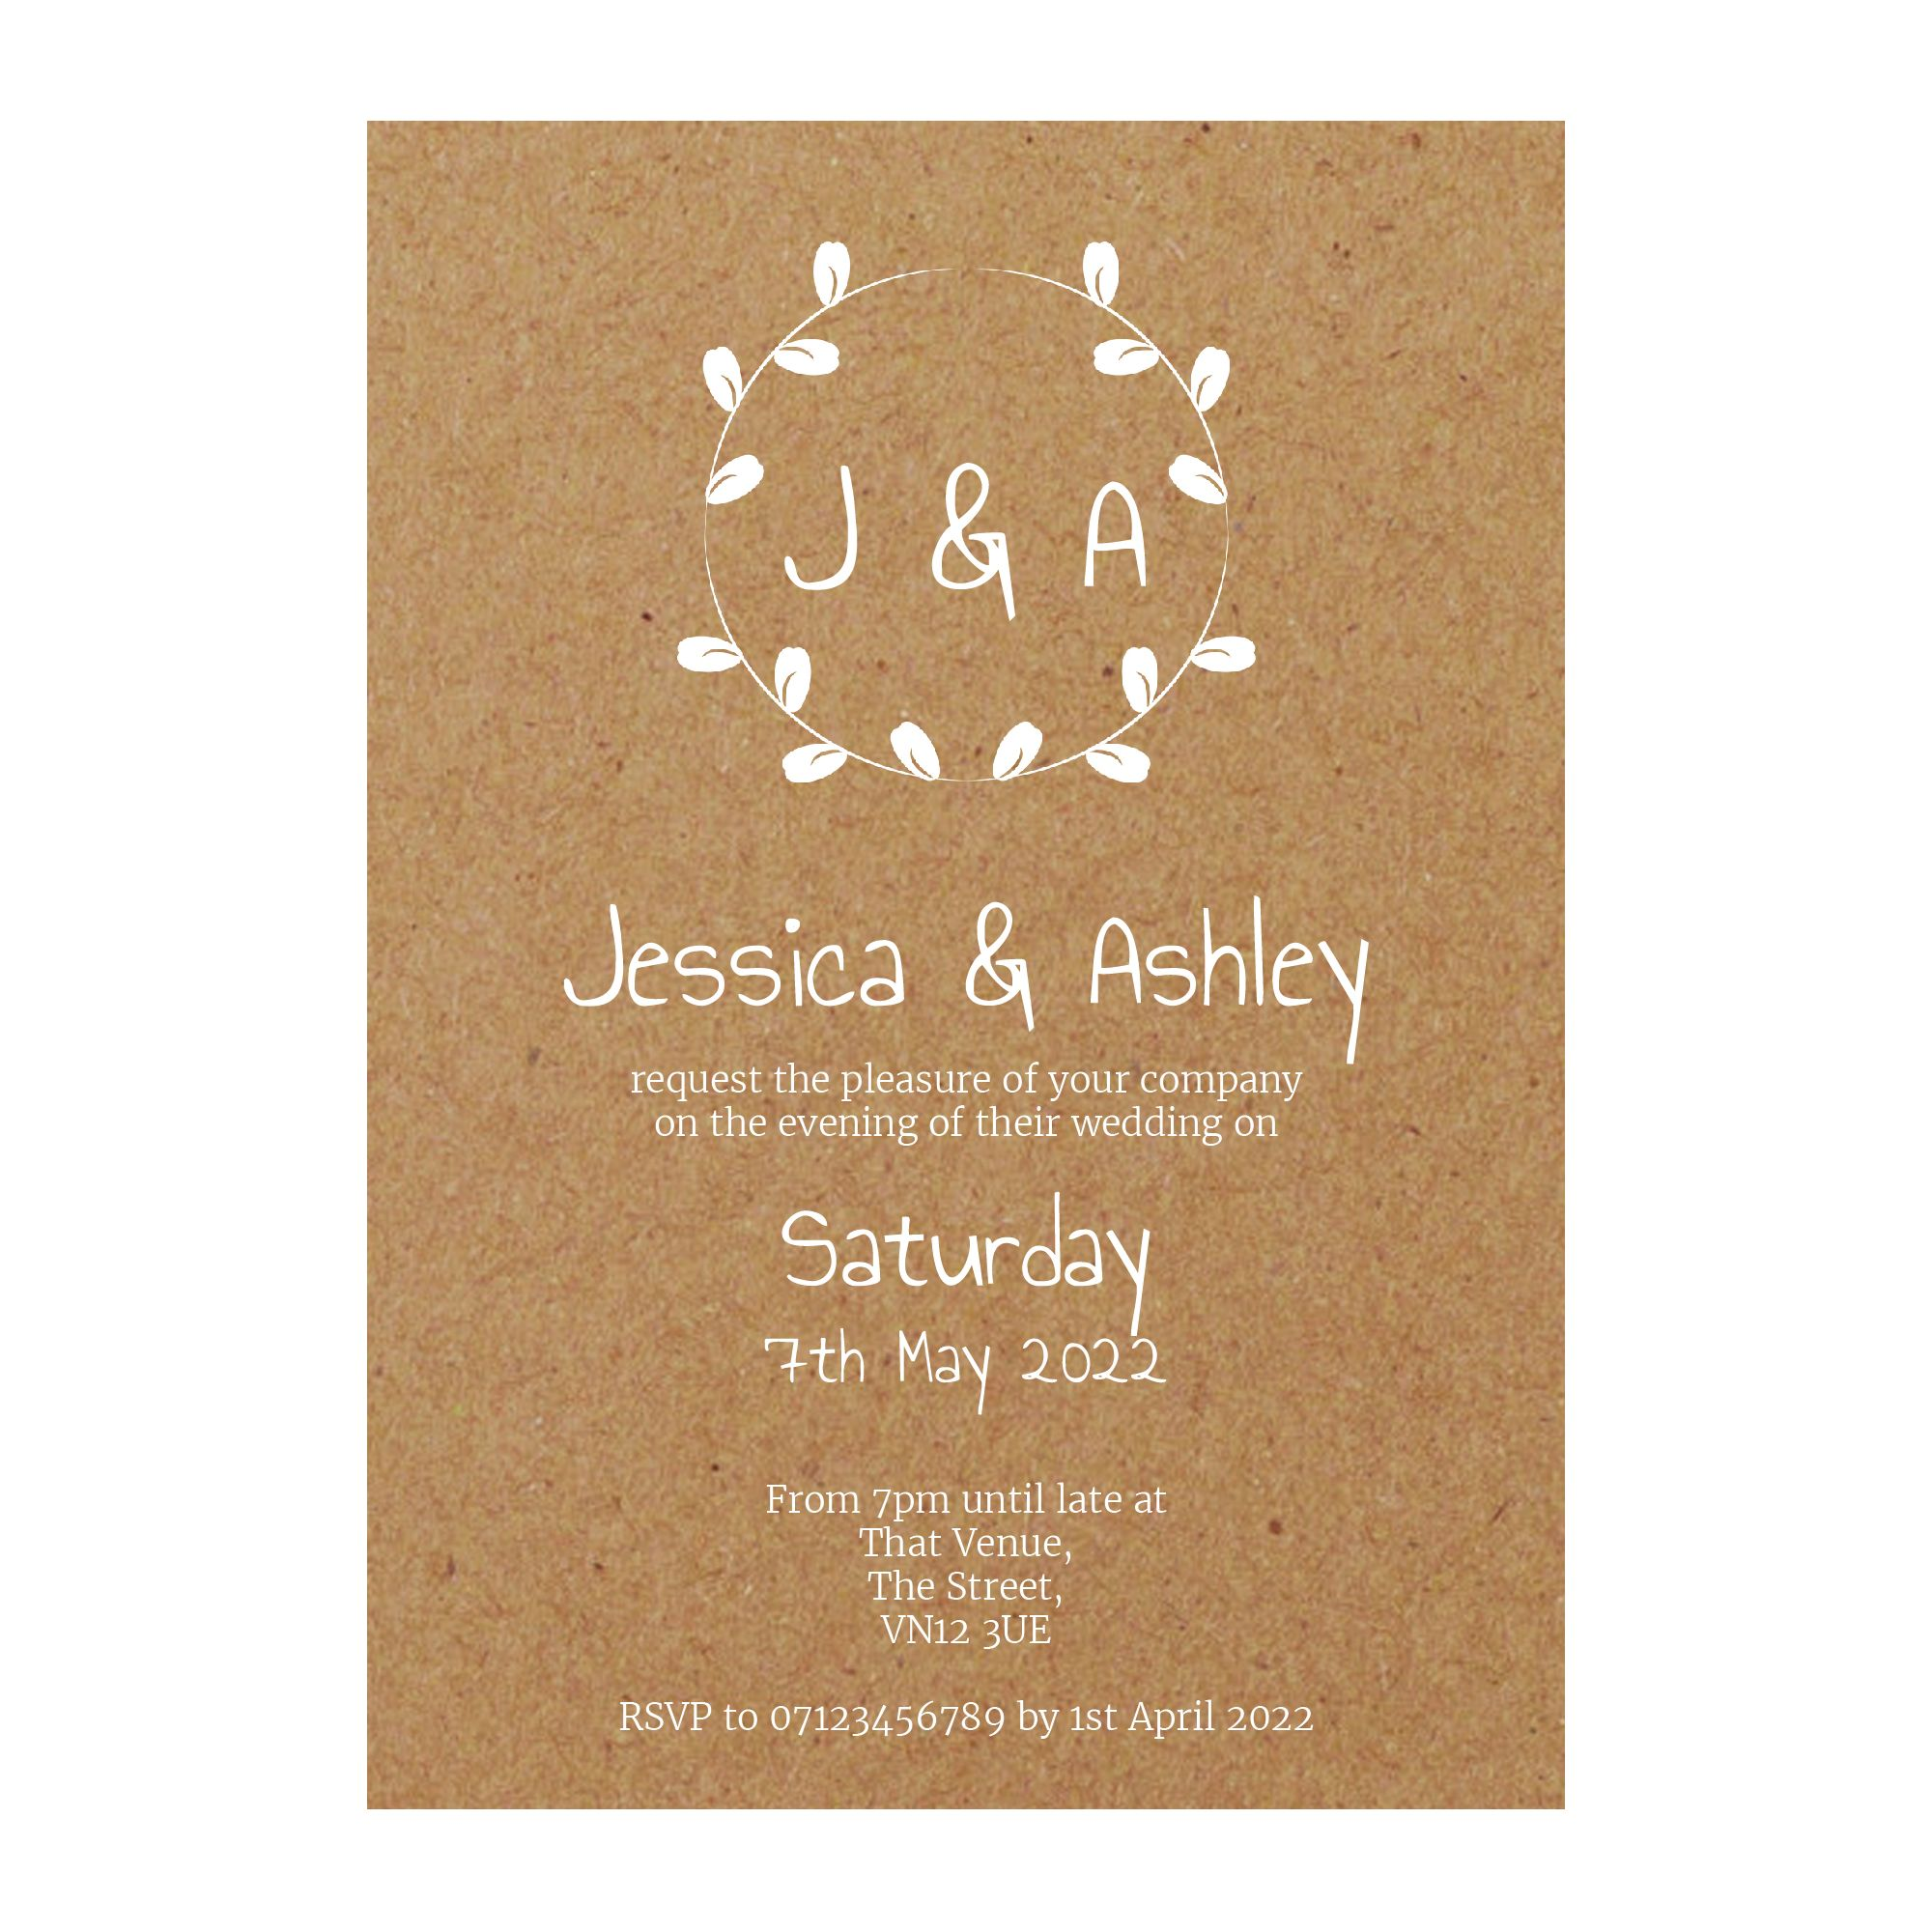 Recycled Brown Kraft with White Ink Minimalist Floral Reception Invitations